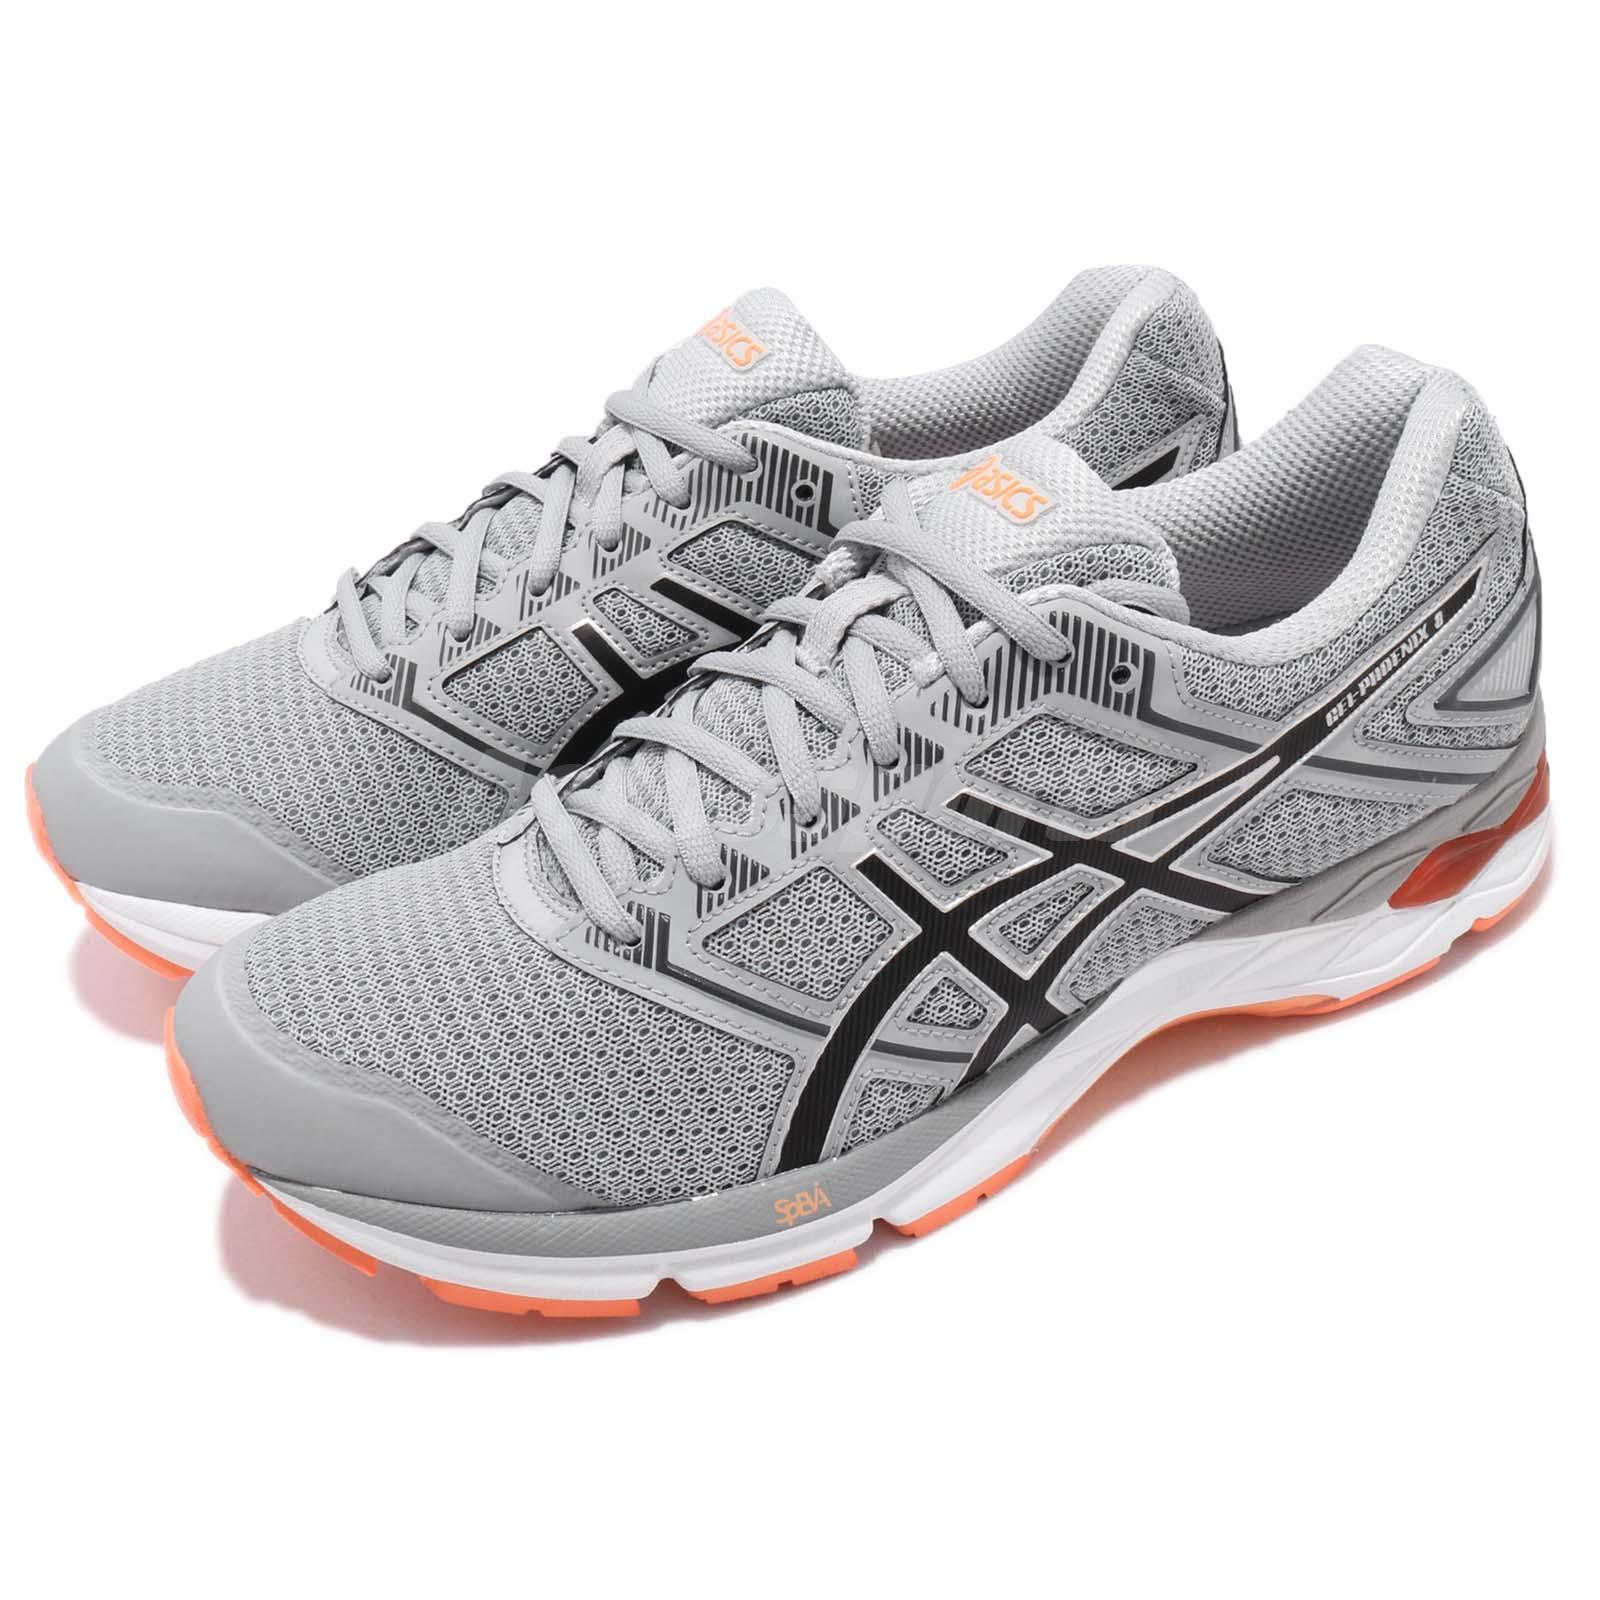 Details about Asics Gel-Phoenix 8 Grey Black Orange Mens Running Shoes  Trainer T6F2N-9690